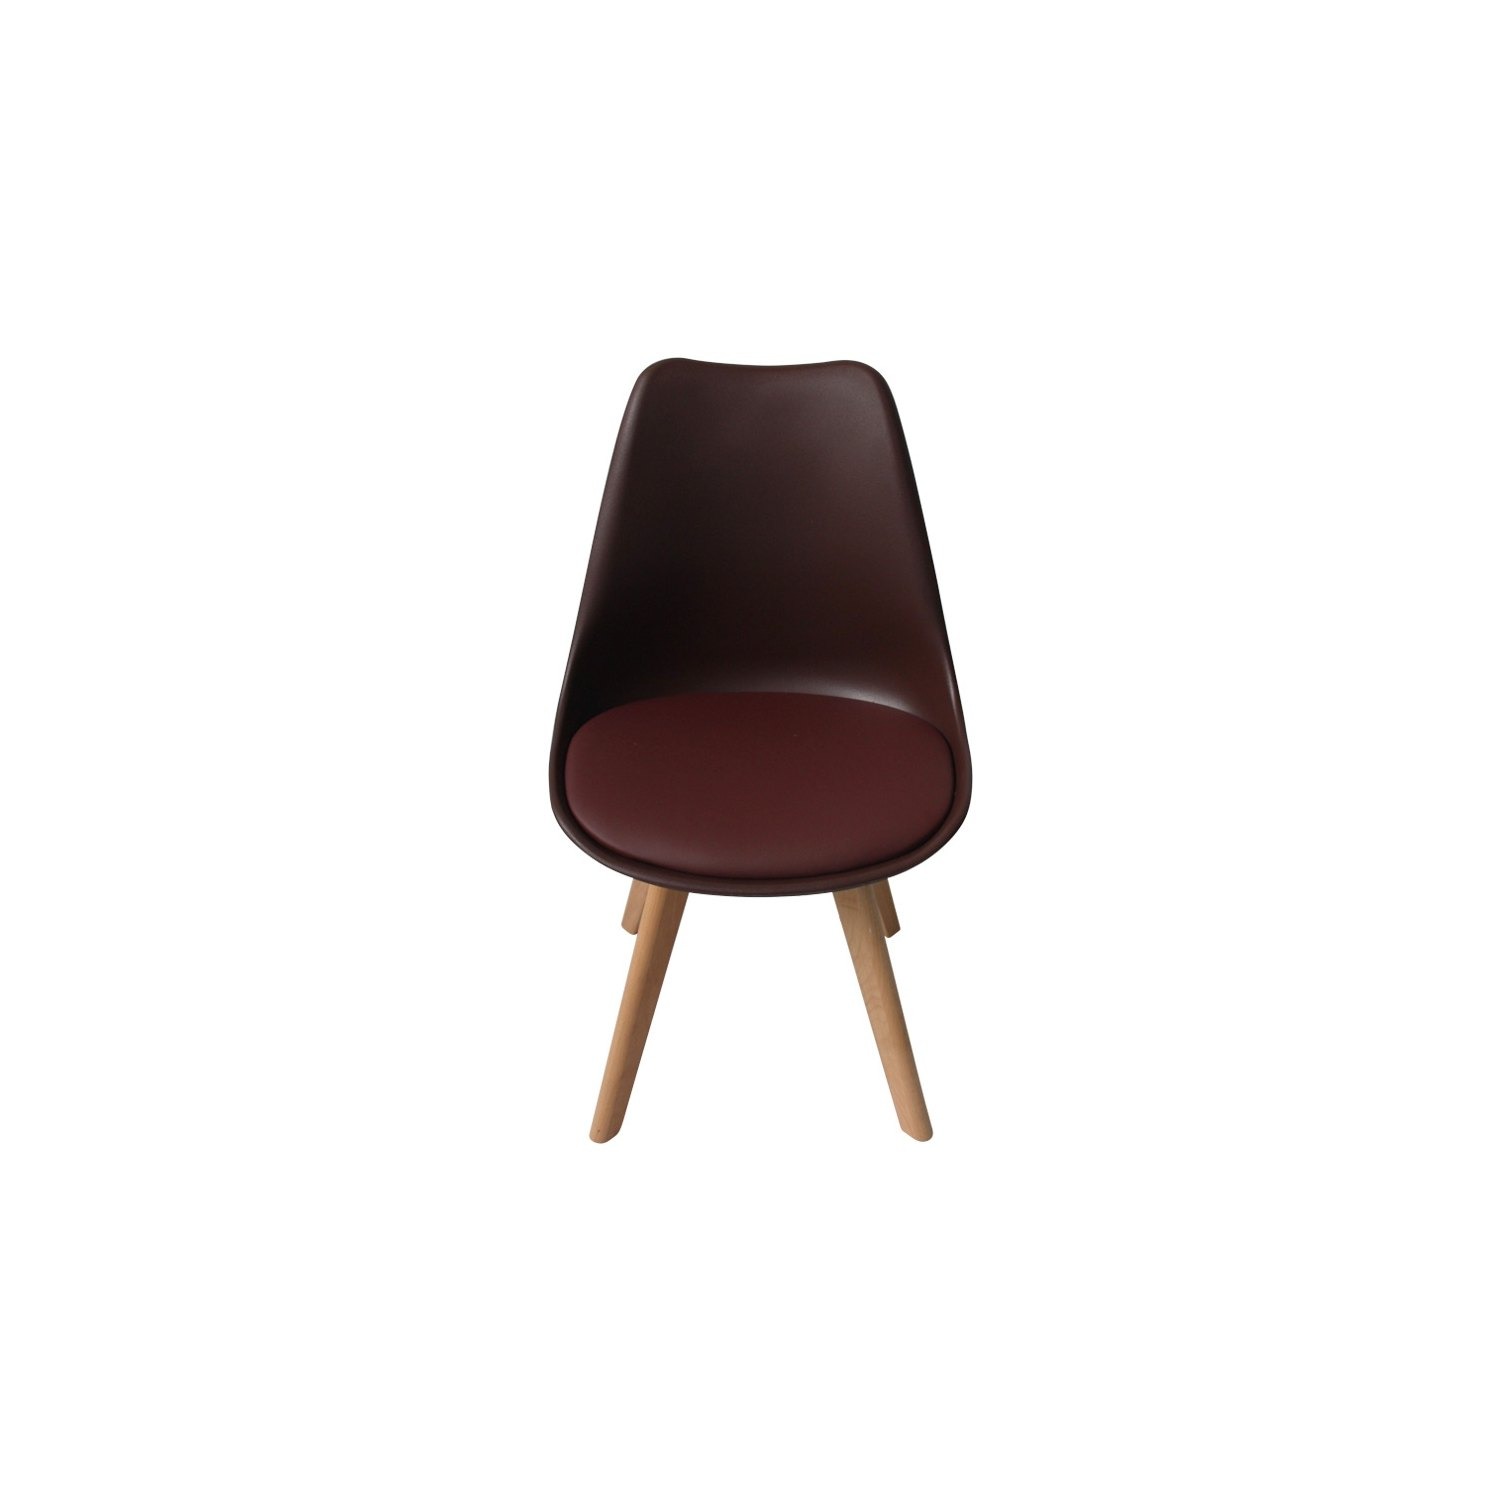 Silla new tower chocolate silla tower online sillas for Sillas de diseno online